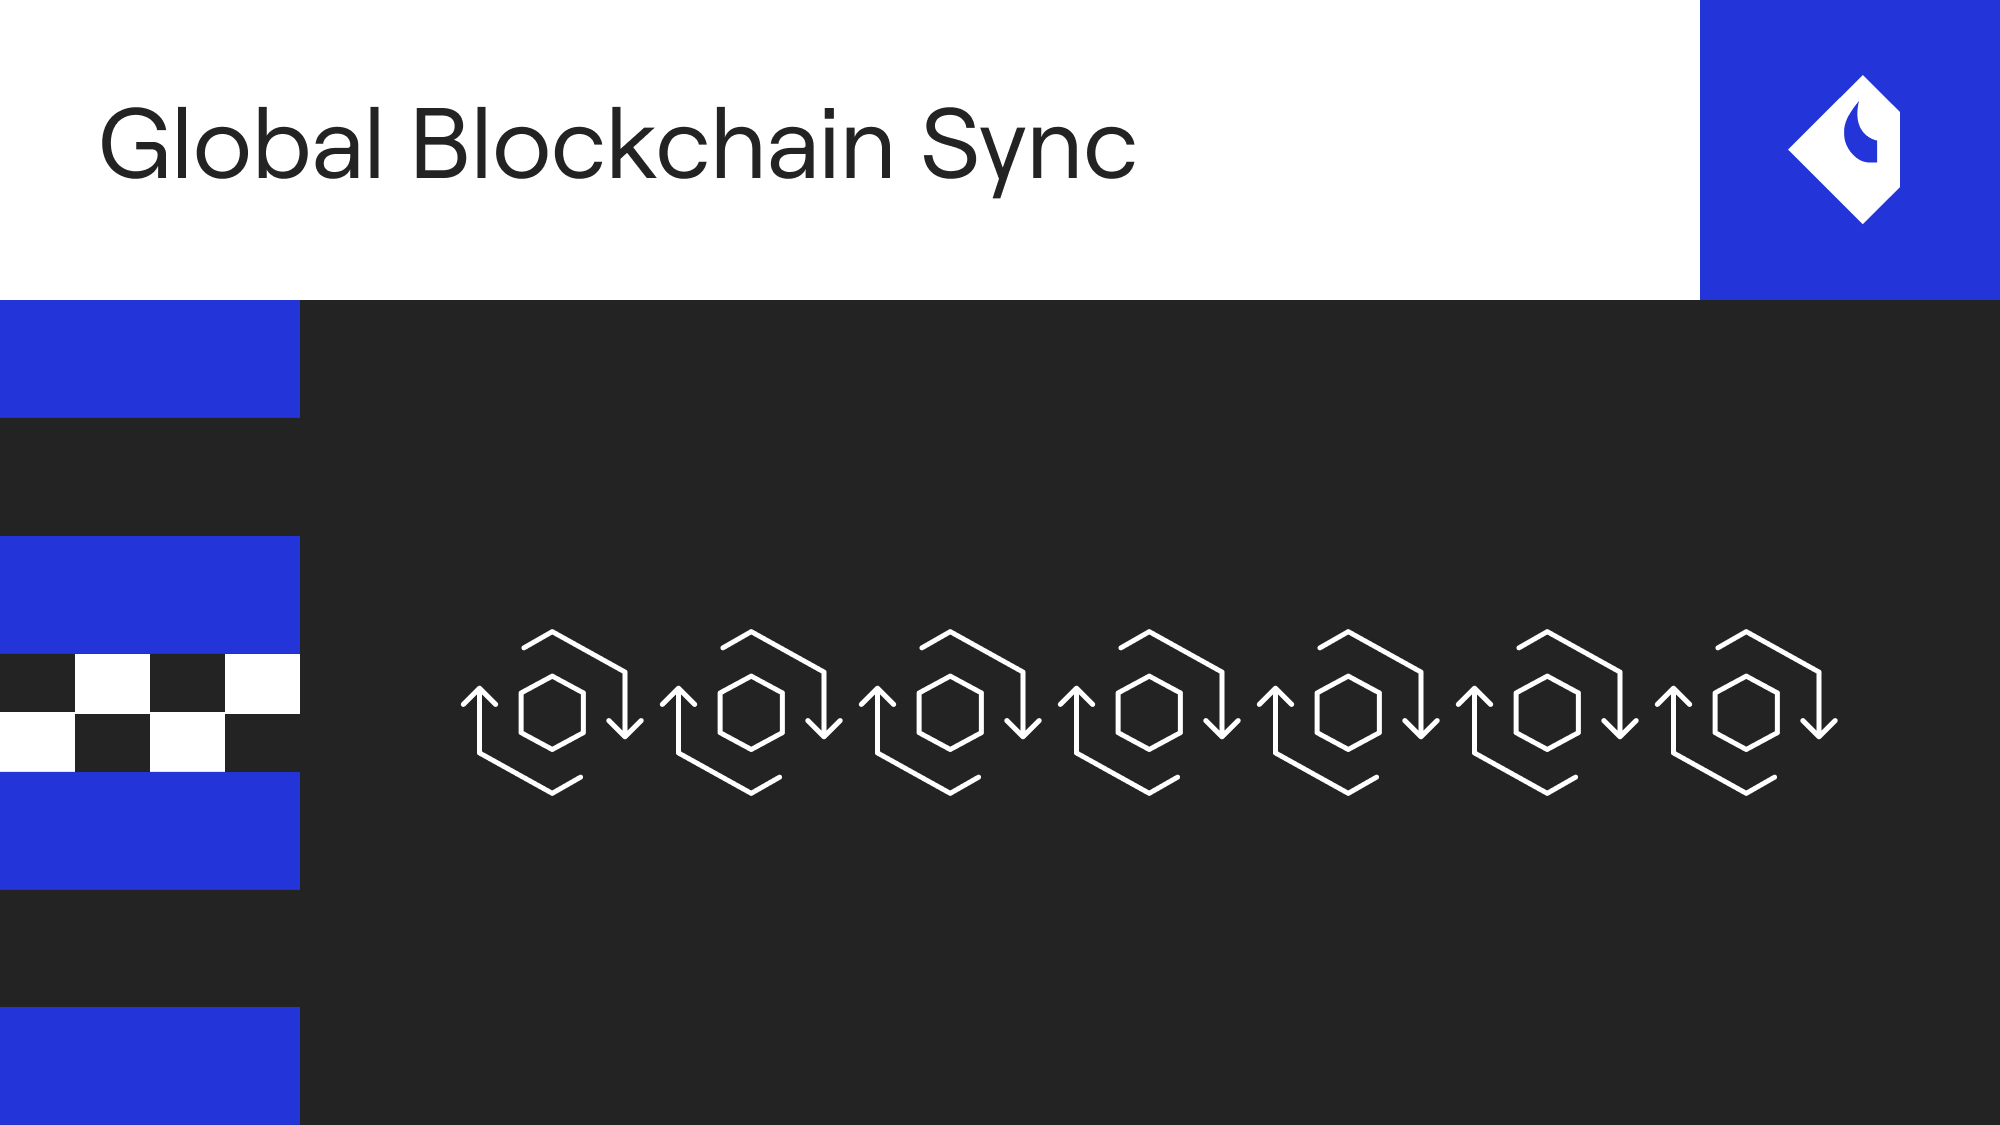 Launch fully synced nodes in minutes with Global Blockchain Sync